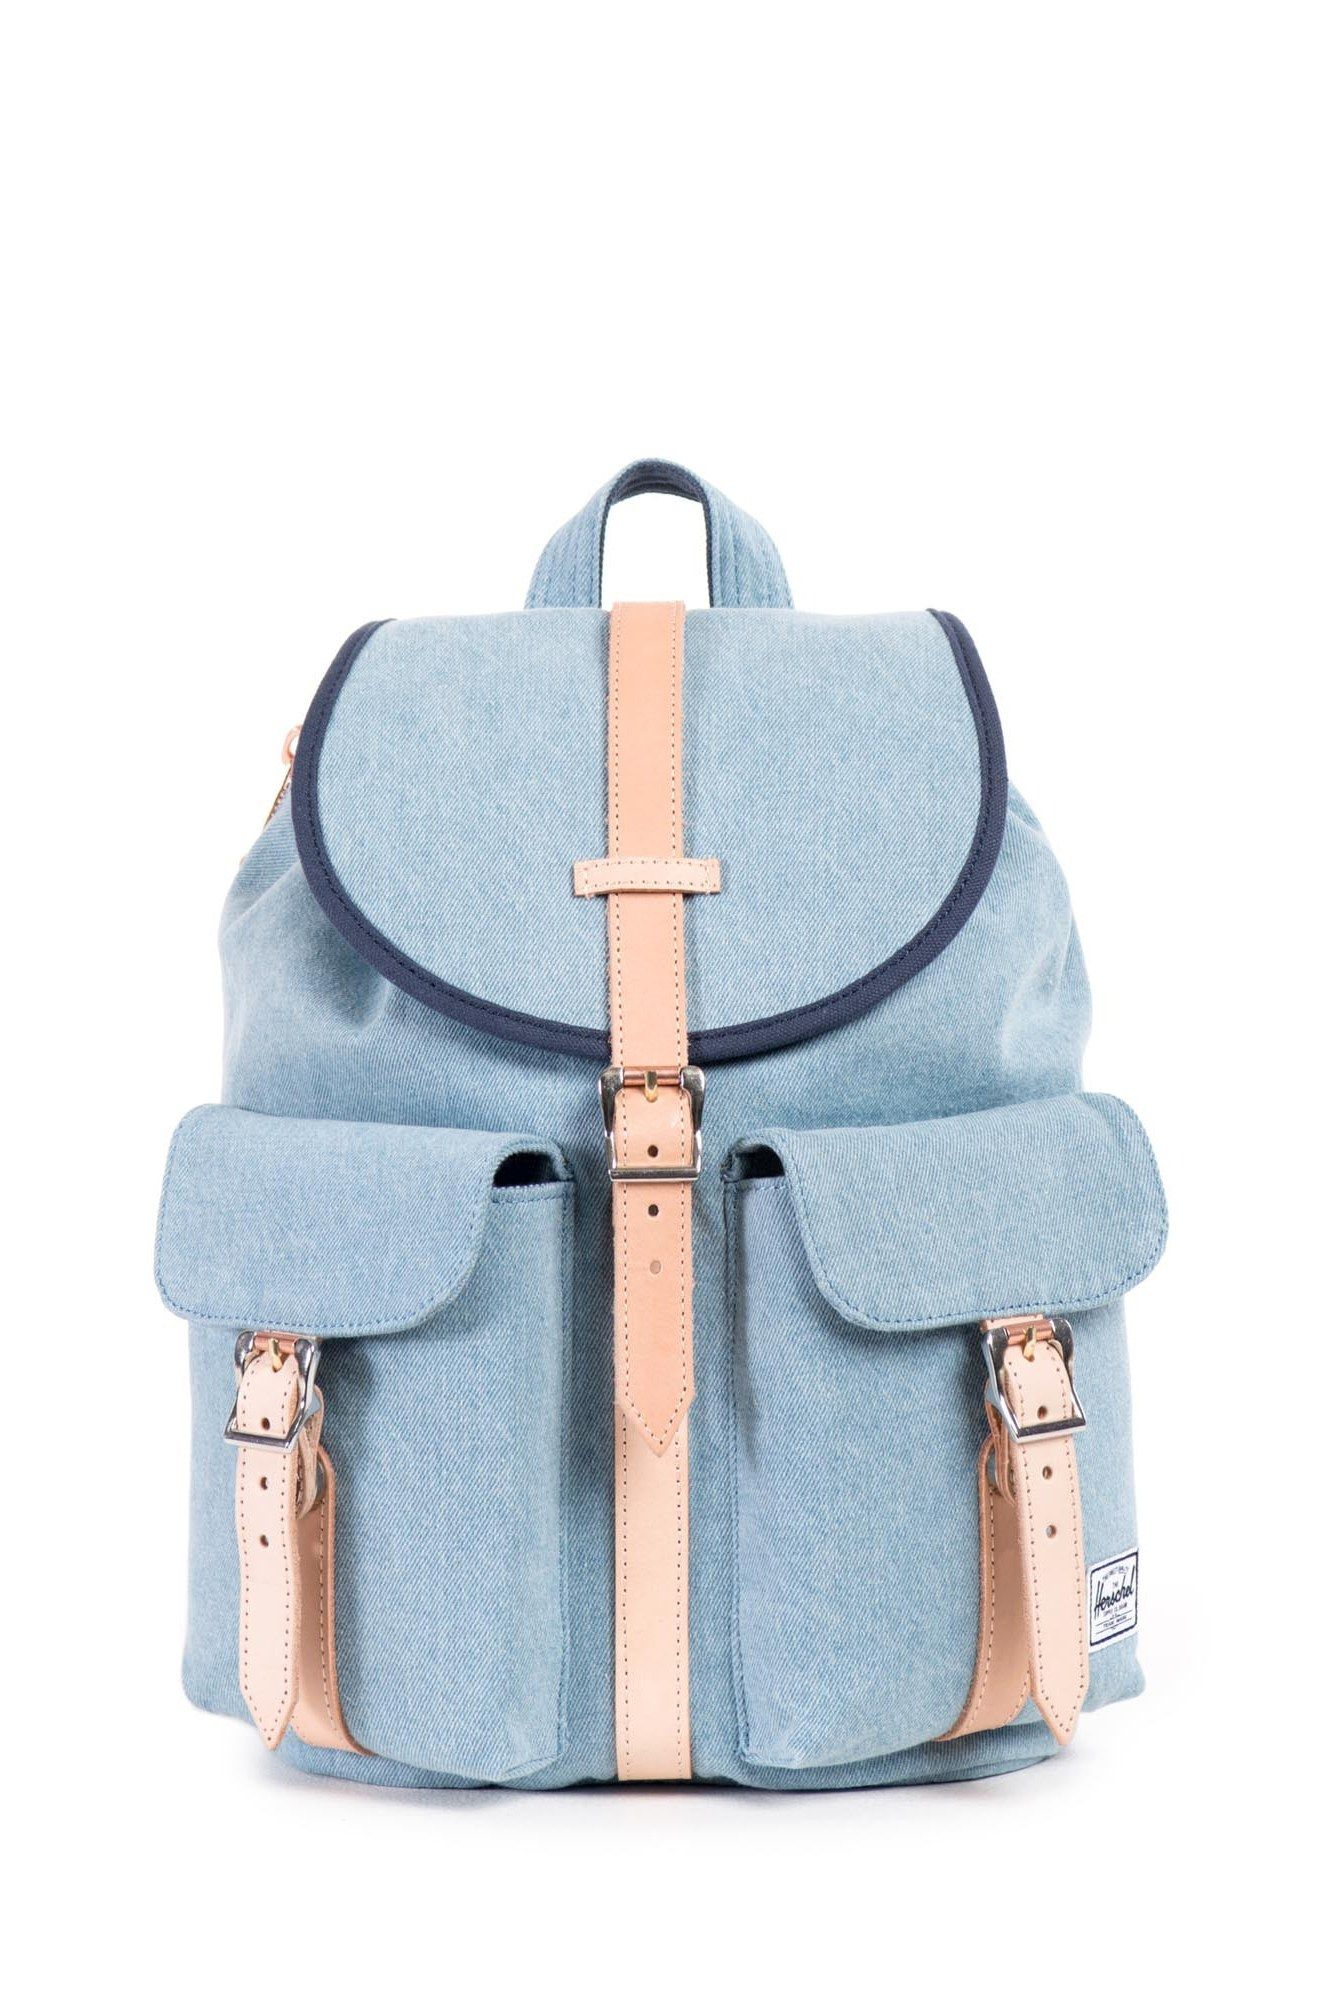 These Stylish Backpacks Will Complete All Your 2020 Back To School